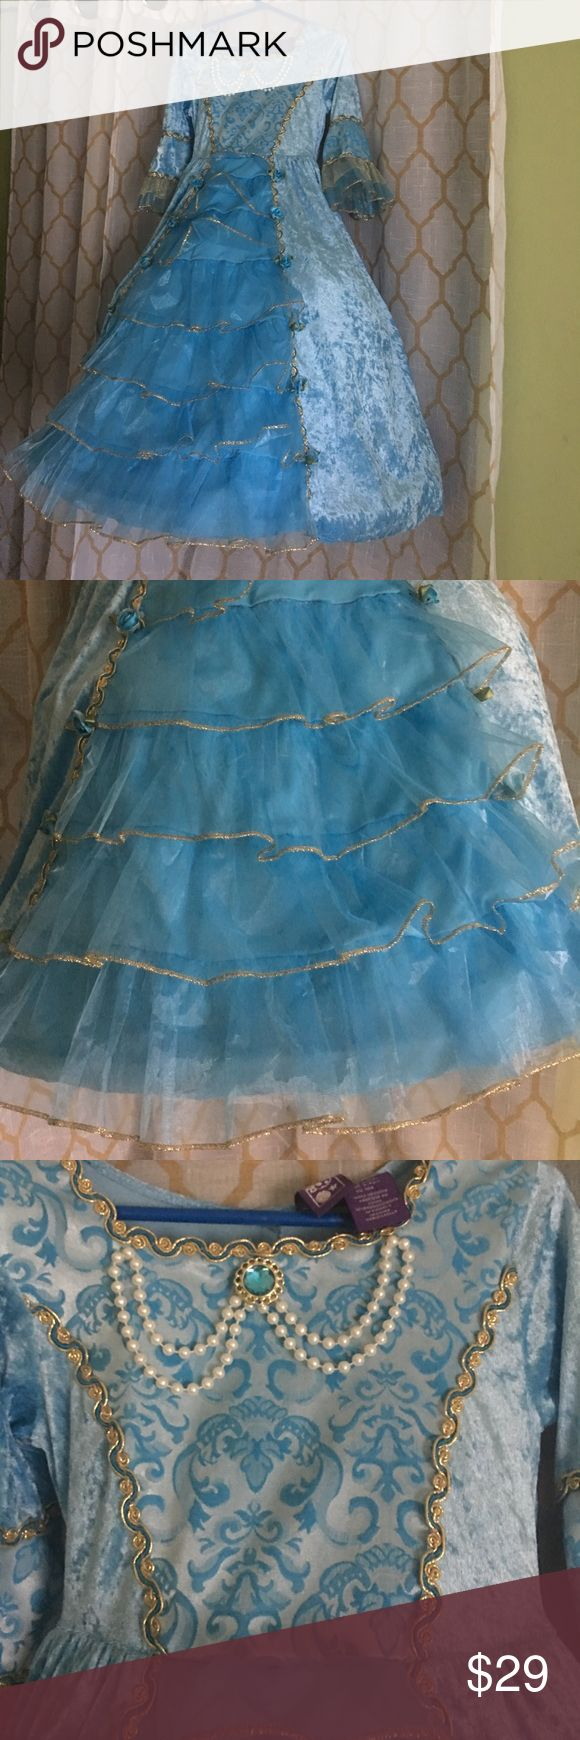 Cinderella Dress 👗 up Hoop Dress Beautifully designed, this magical dress will make your little one feel like the Belle of the Ball! Dresses Formal